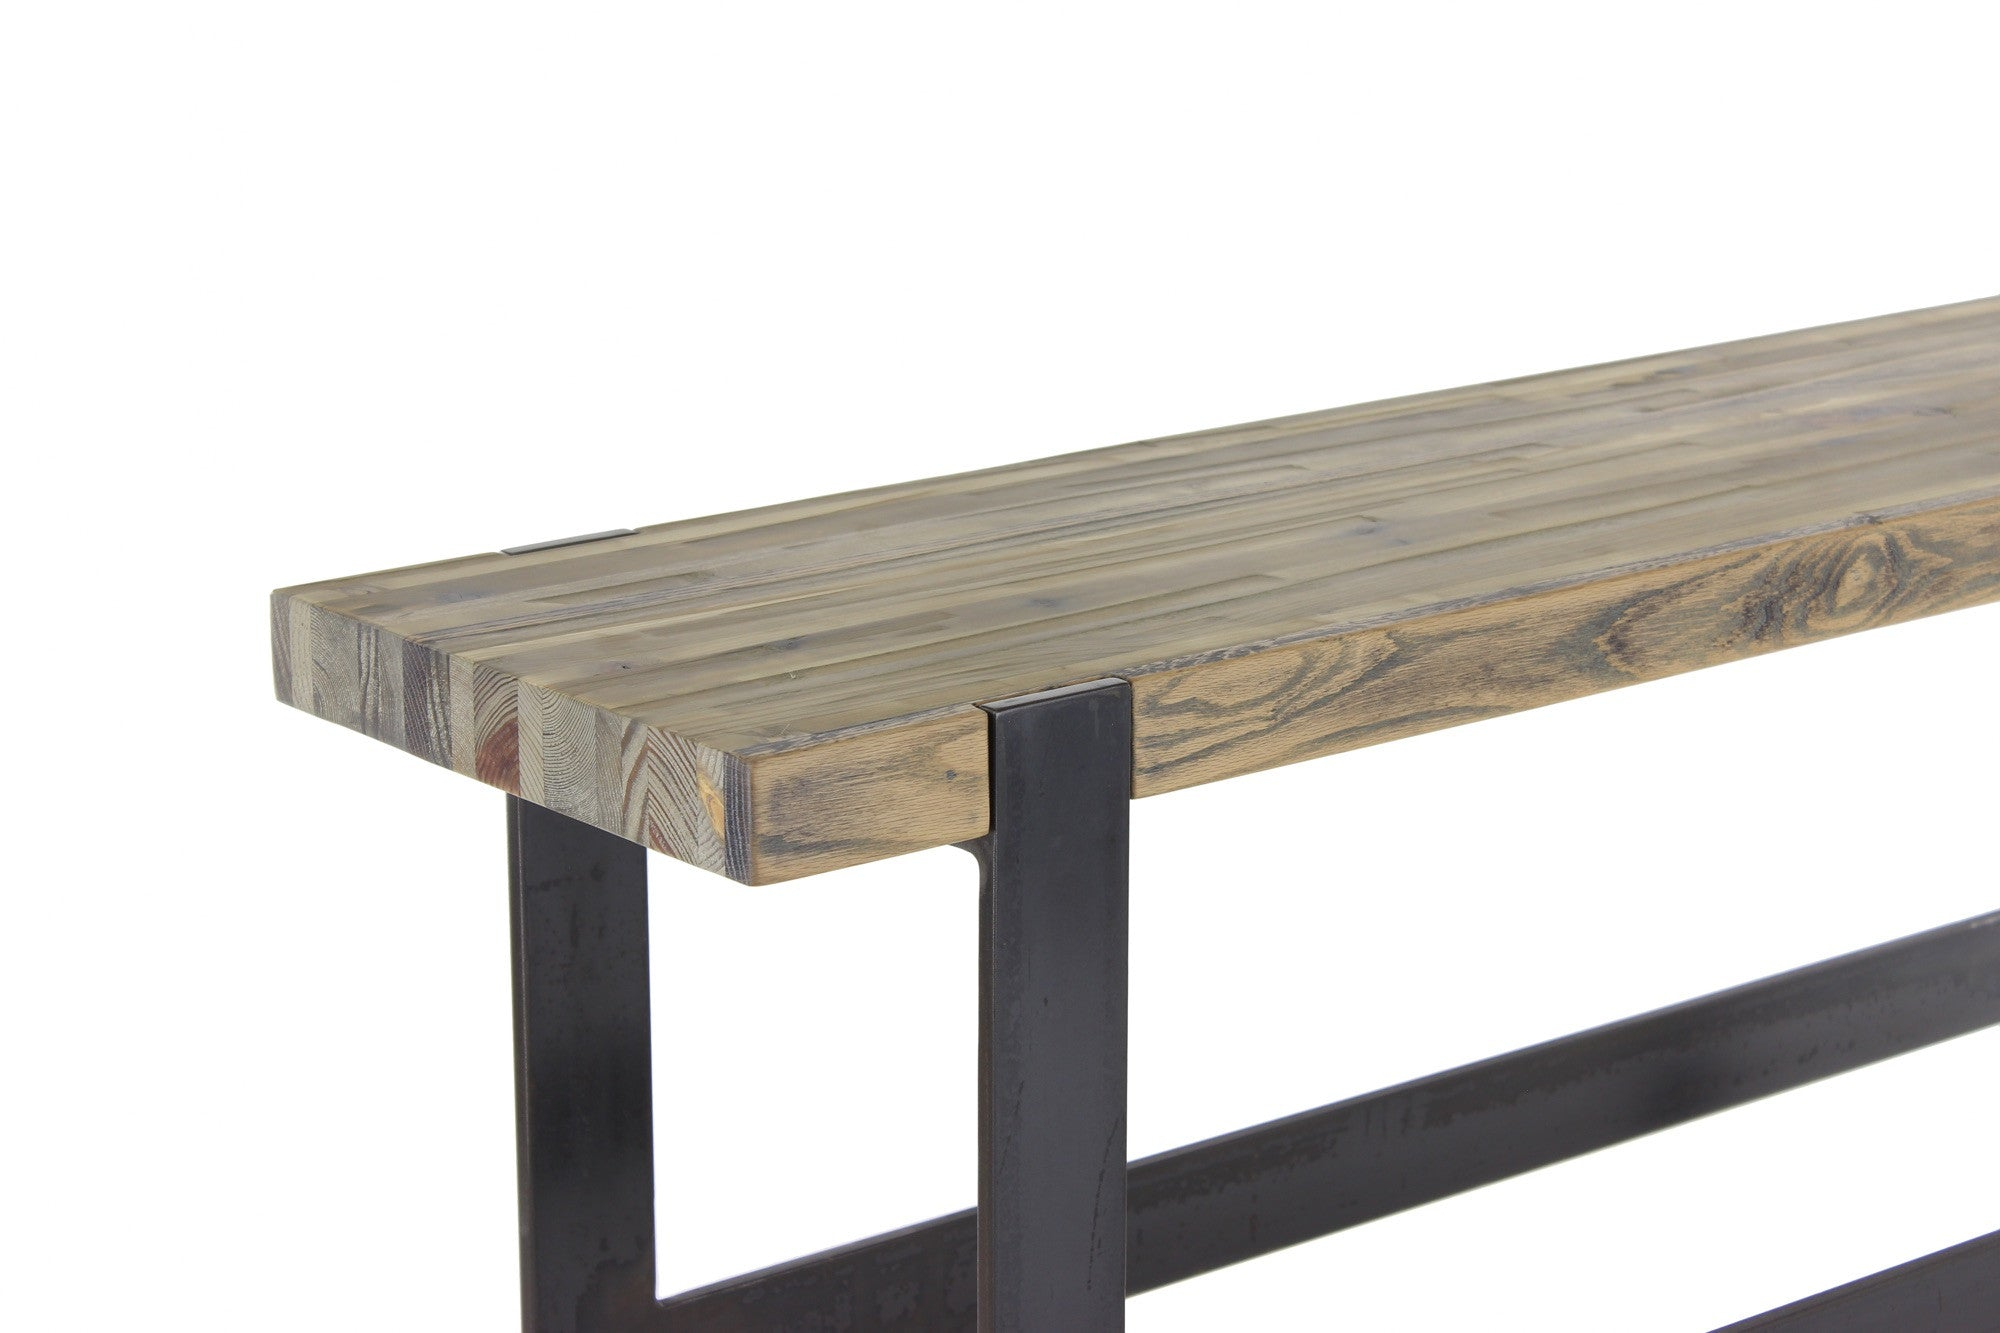 original bar bench | aged distressed wood finish with waxed steel